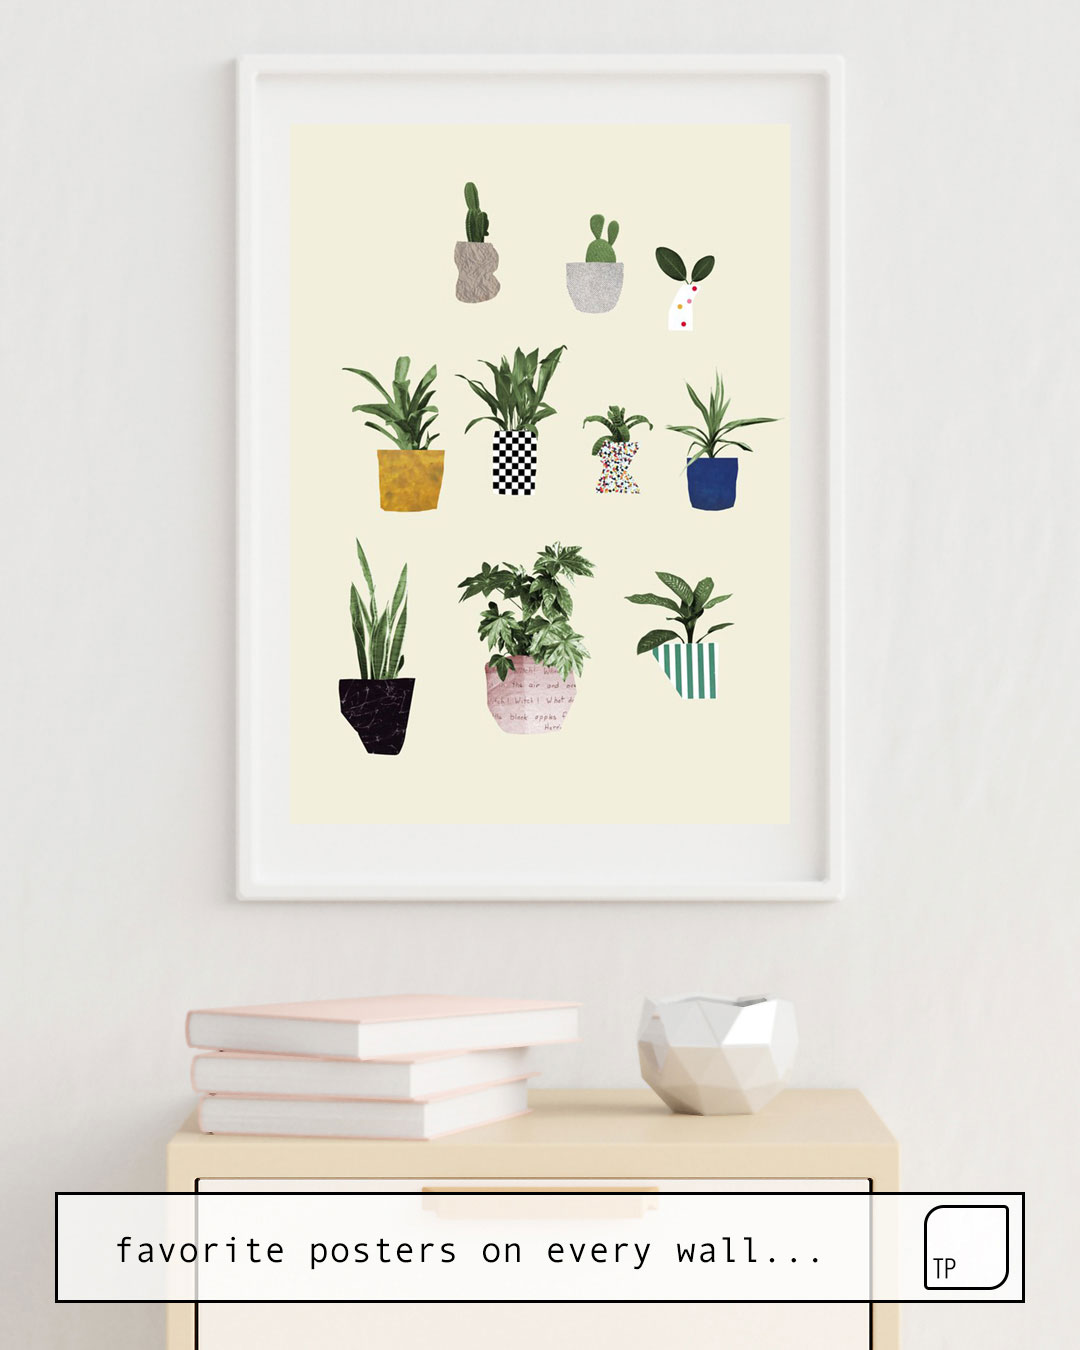 The photo shows an example of furnishing with the motif HOUSE PLANTS by Beth Hoeckel as mural